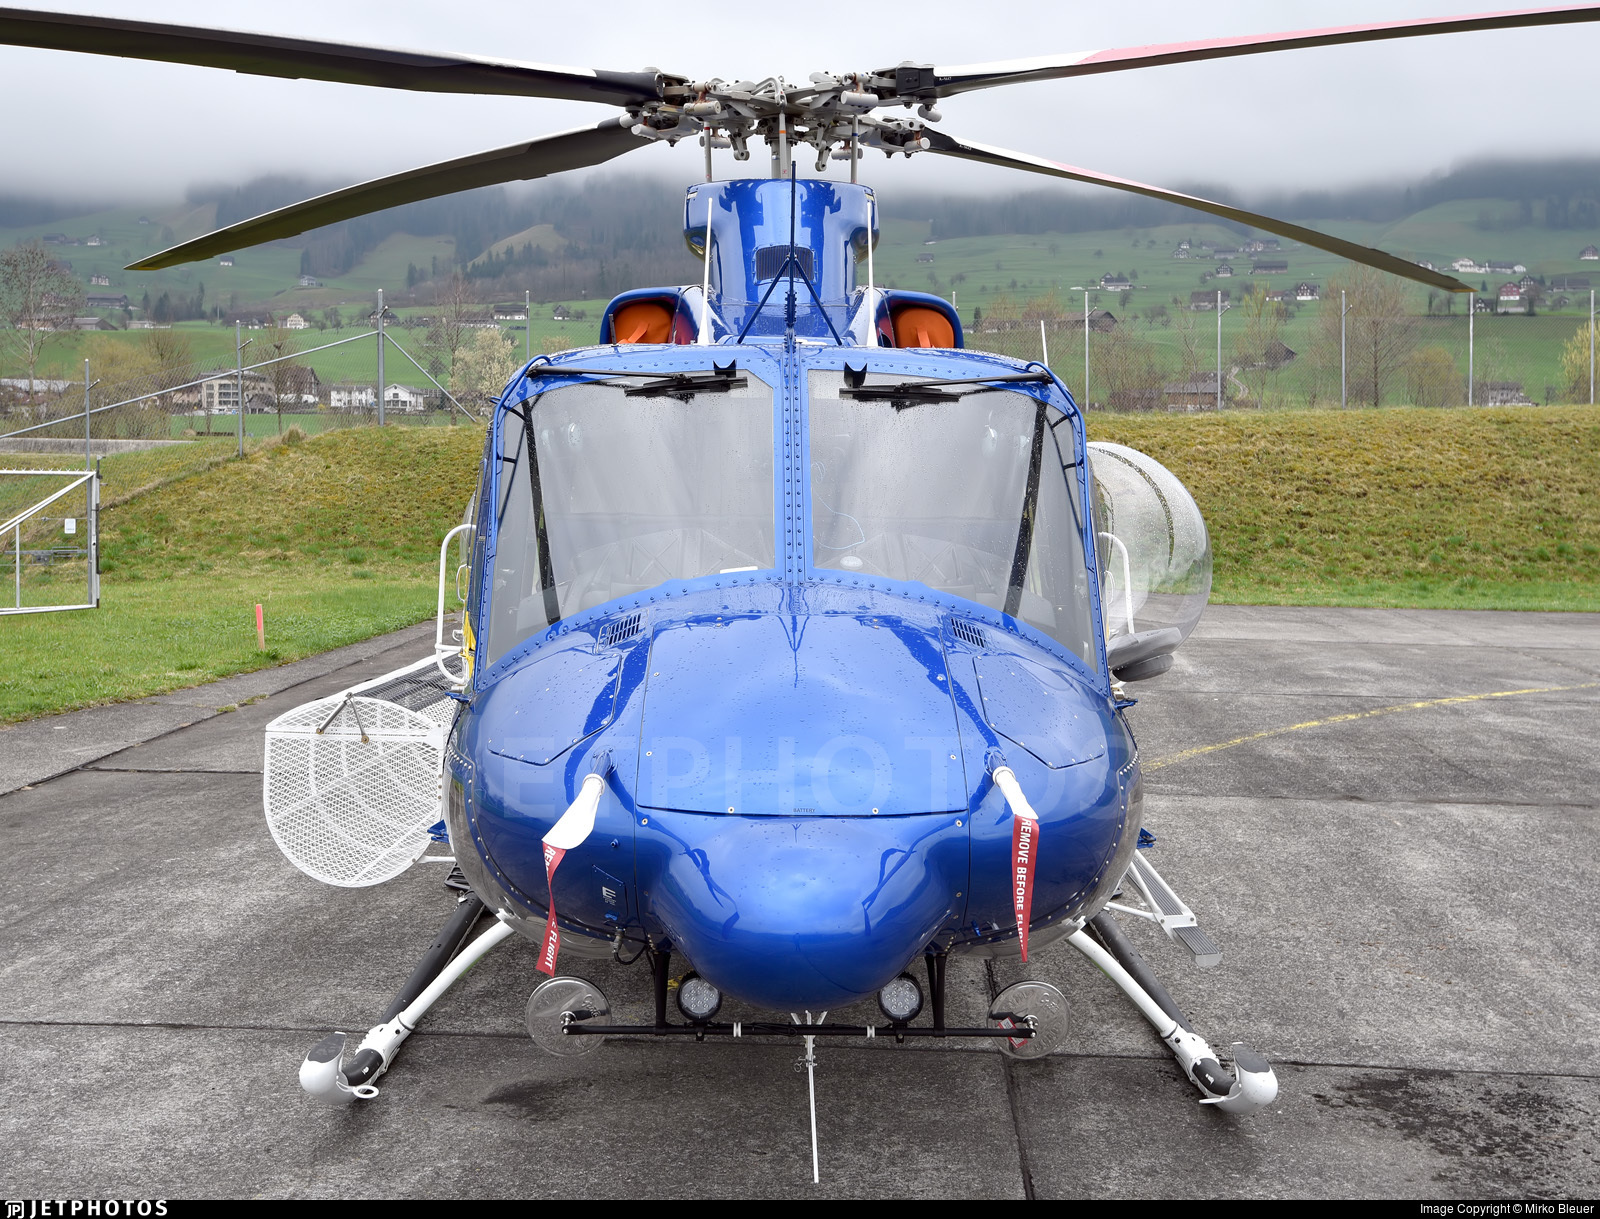 OE-XHT - Agusta-Bell AB-412 - Private